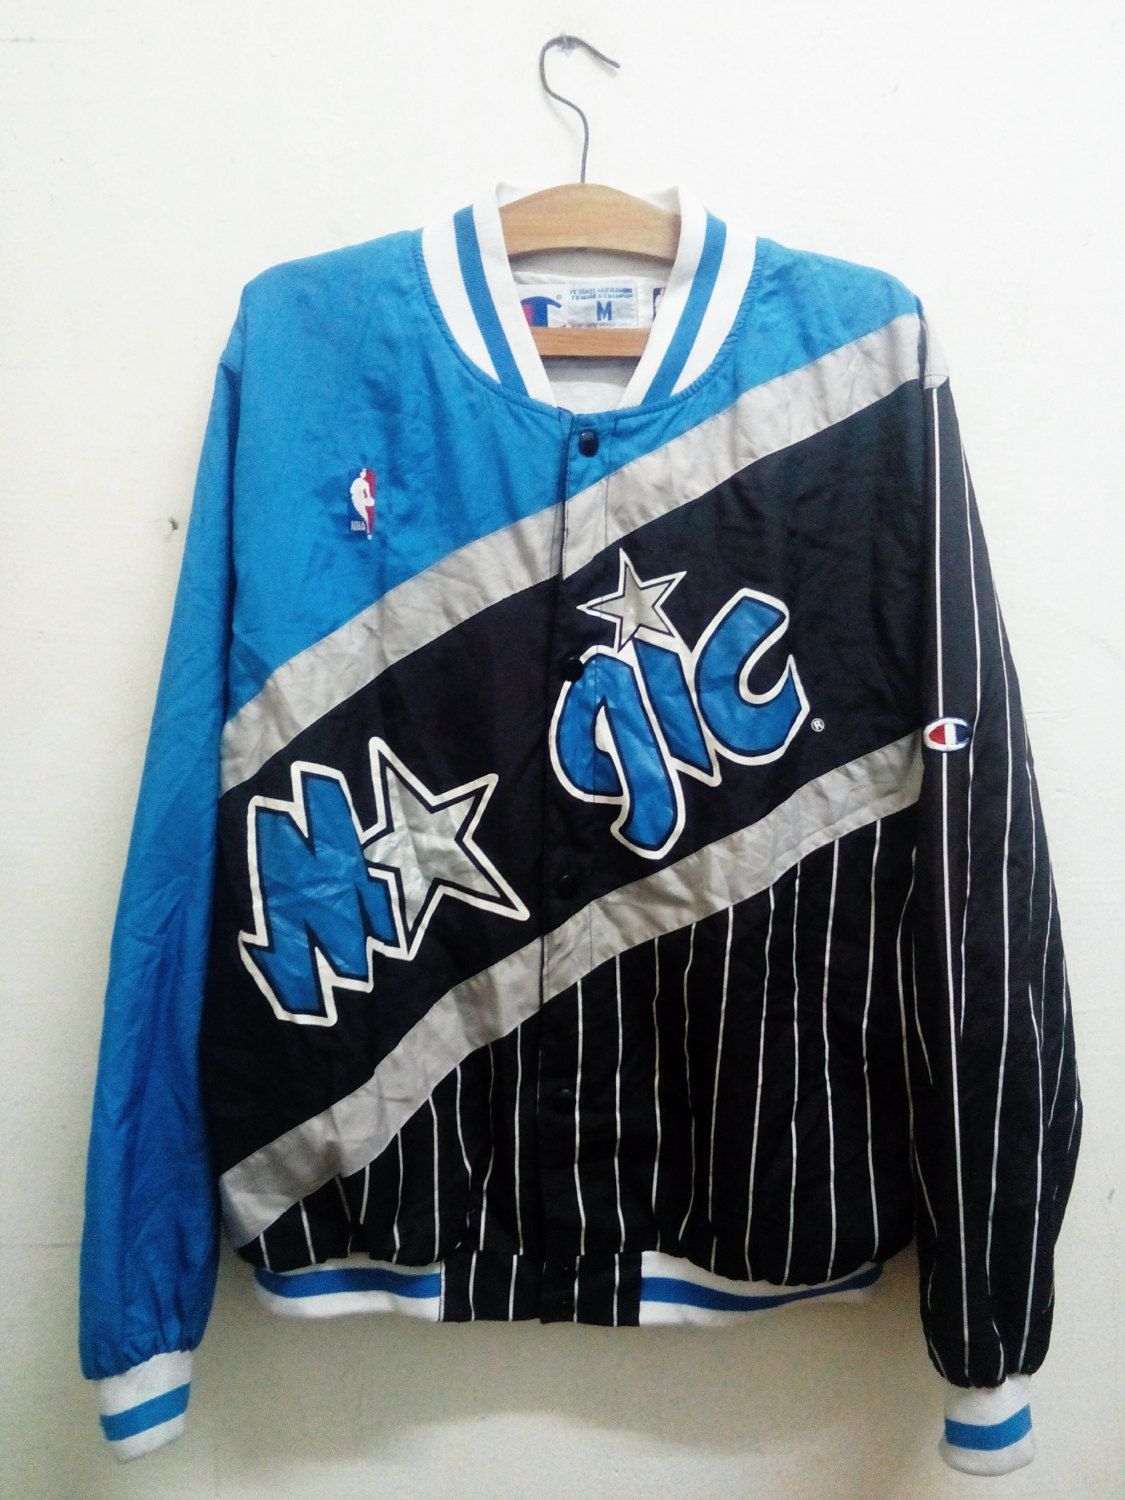 Sale Rare !! Vintage Orlando Magic Champion Nba Jacket Warmup Black Blue  Stripes Mens Medium Celebrity Fashion 90 s Style Sz M by Psychovault on Etsy 2762fe4ef